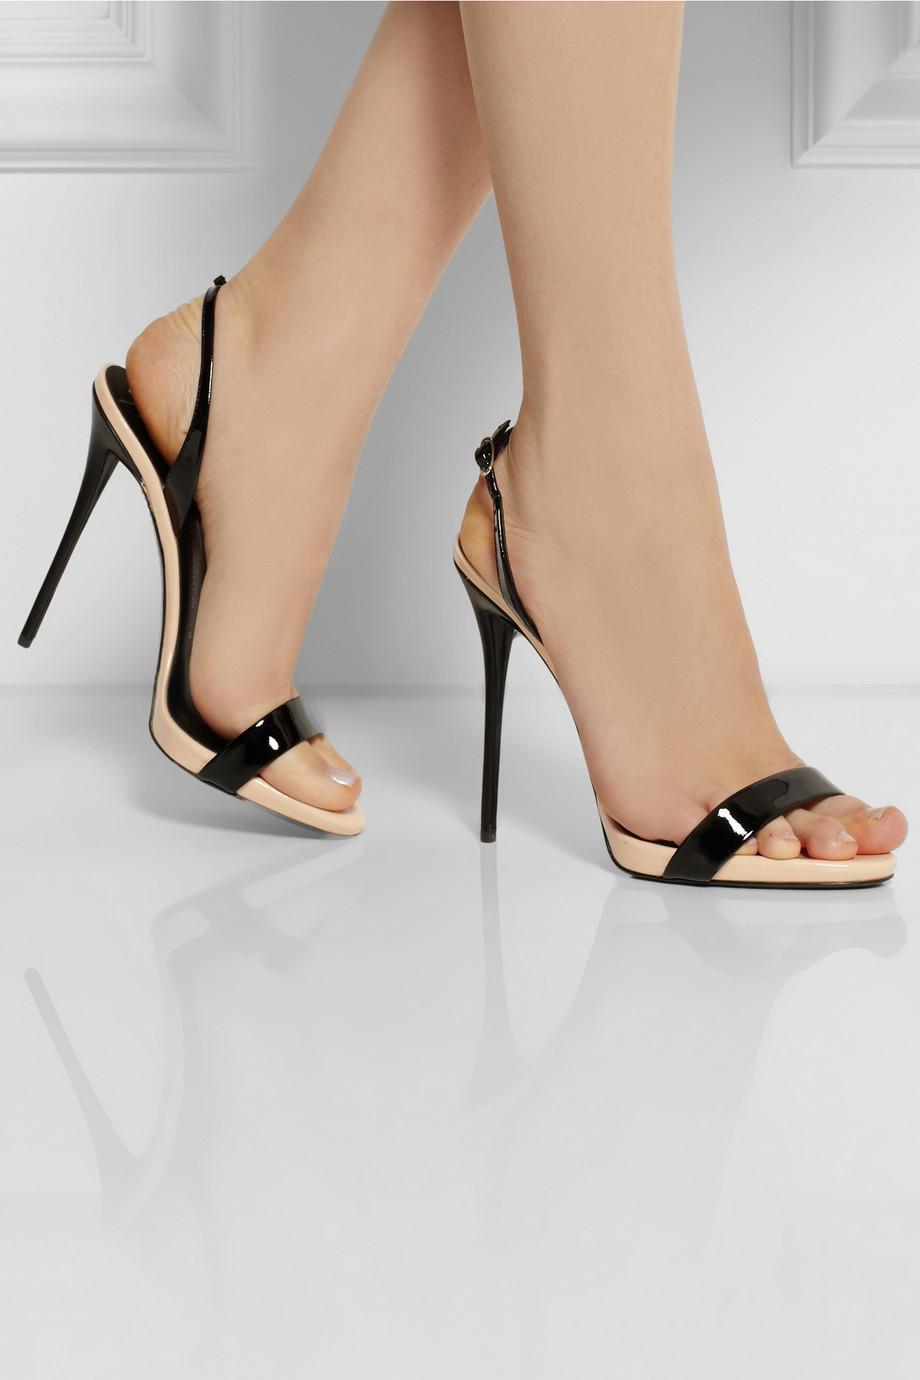 52427ac0fe90 ... buy lyst giuseppe zanotti coline twotone patentleather sandals in black  94614 0d016